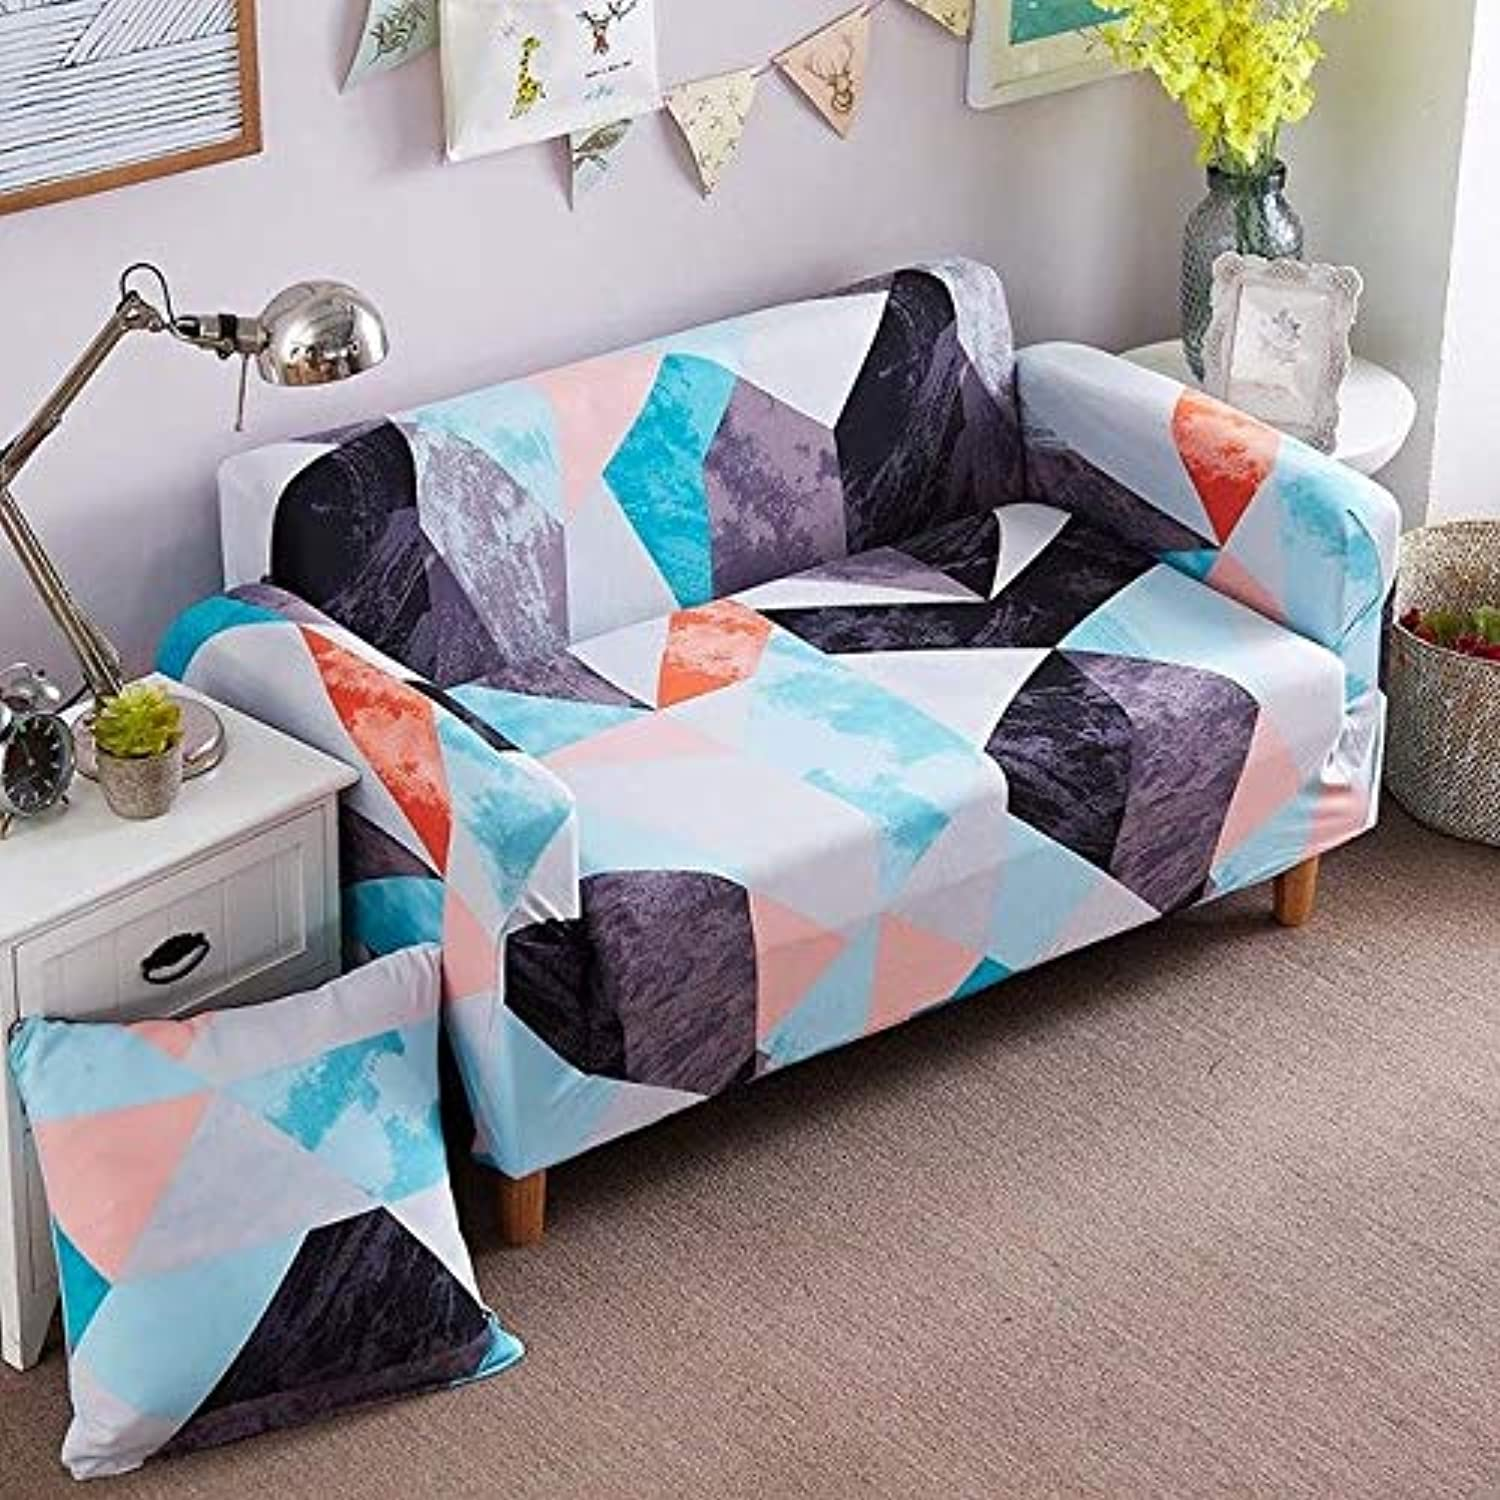 Farmerly 1pcs Flower Leaf Pattern Soft Stretch Sofa Cover Home Decor Spandex Furniture Covers Decoration Covering Hotel Slipcover 58329   V, Two seat